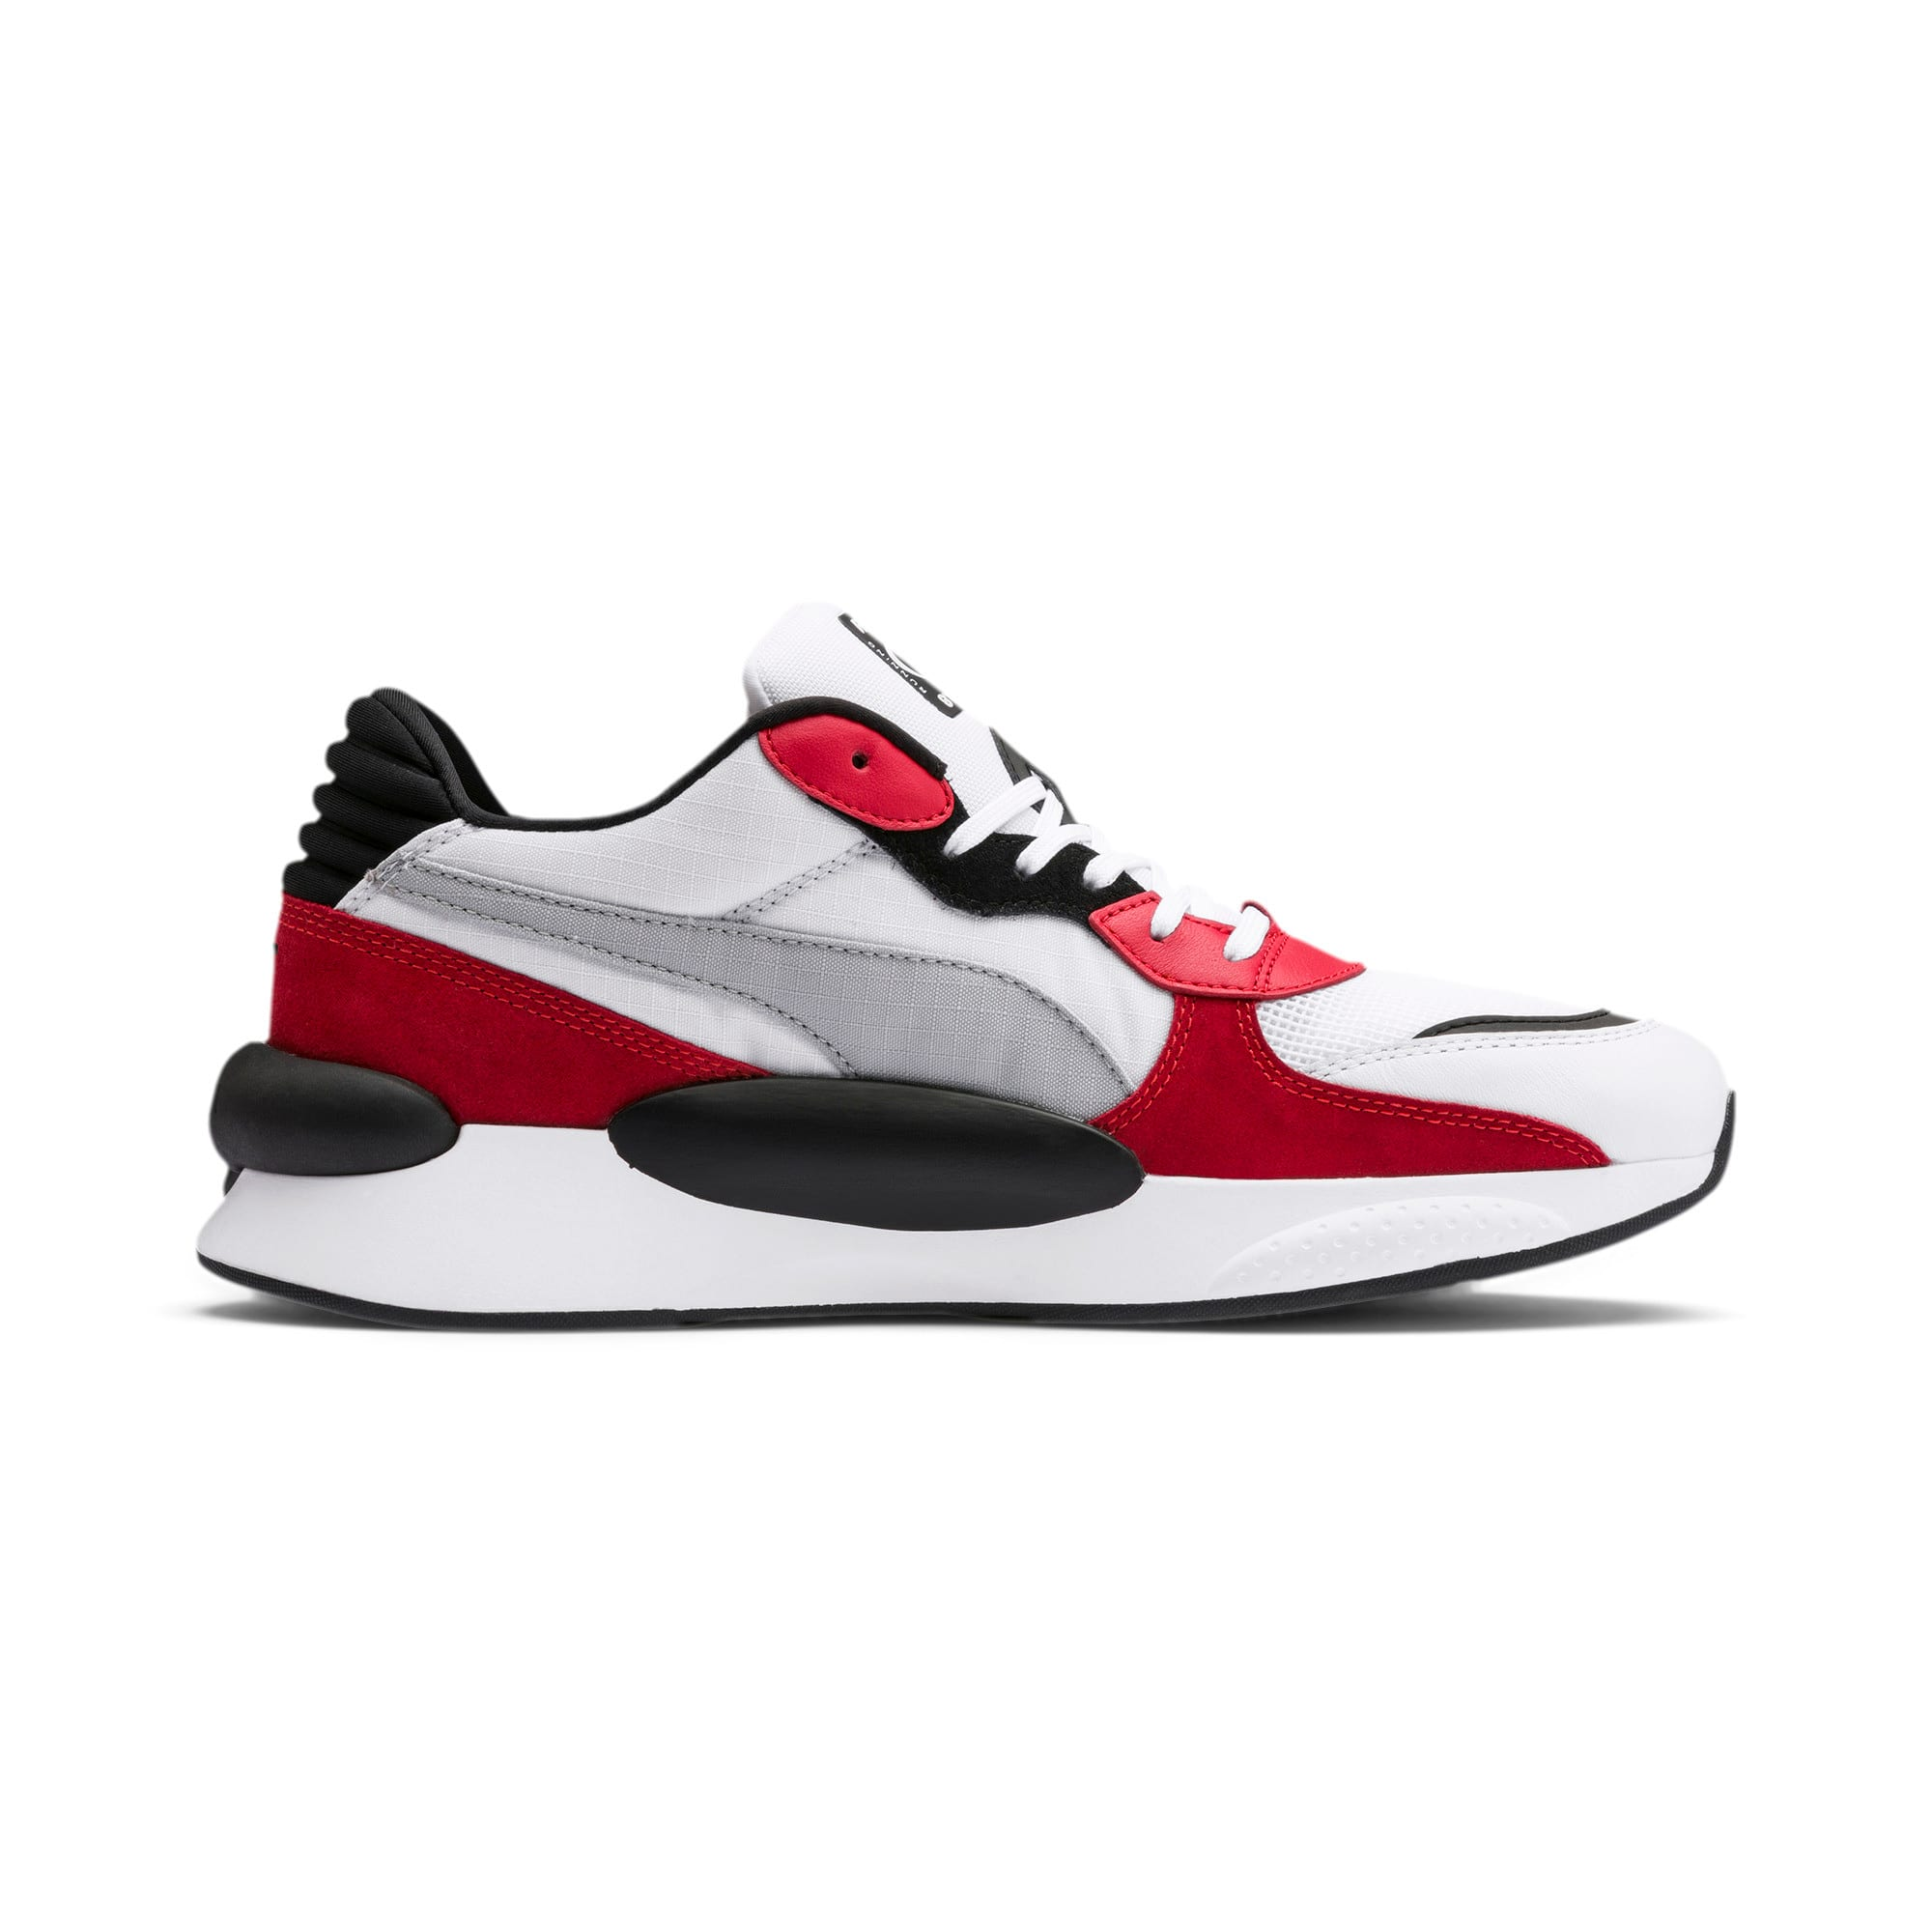 Thumbnail 6 of RS 9.8 Space Sneakers, Puma White-High Risk Red, medium